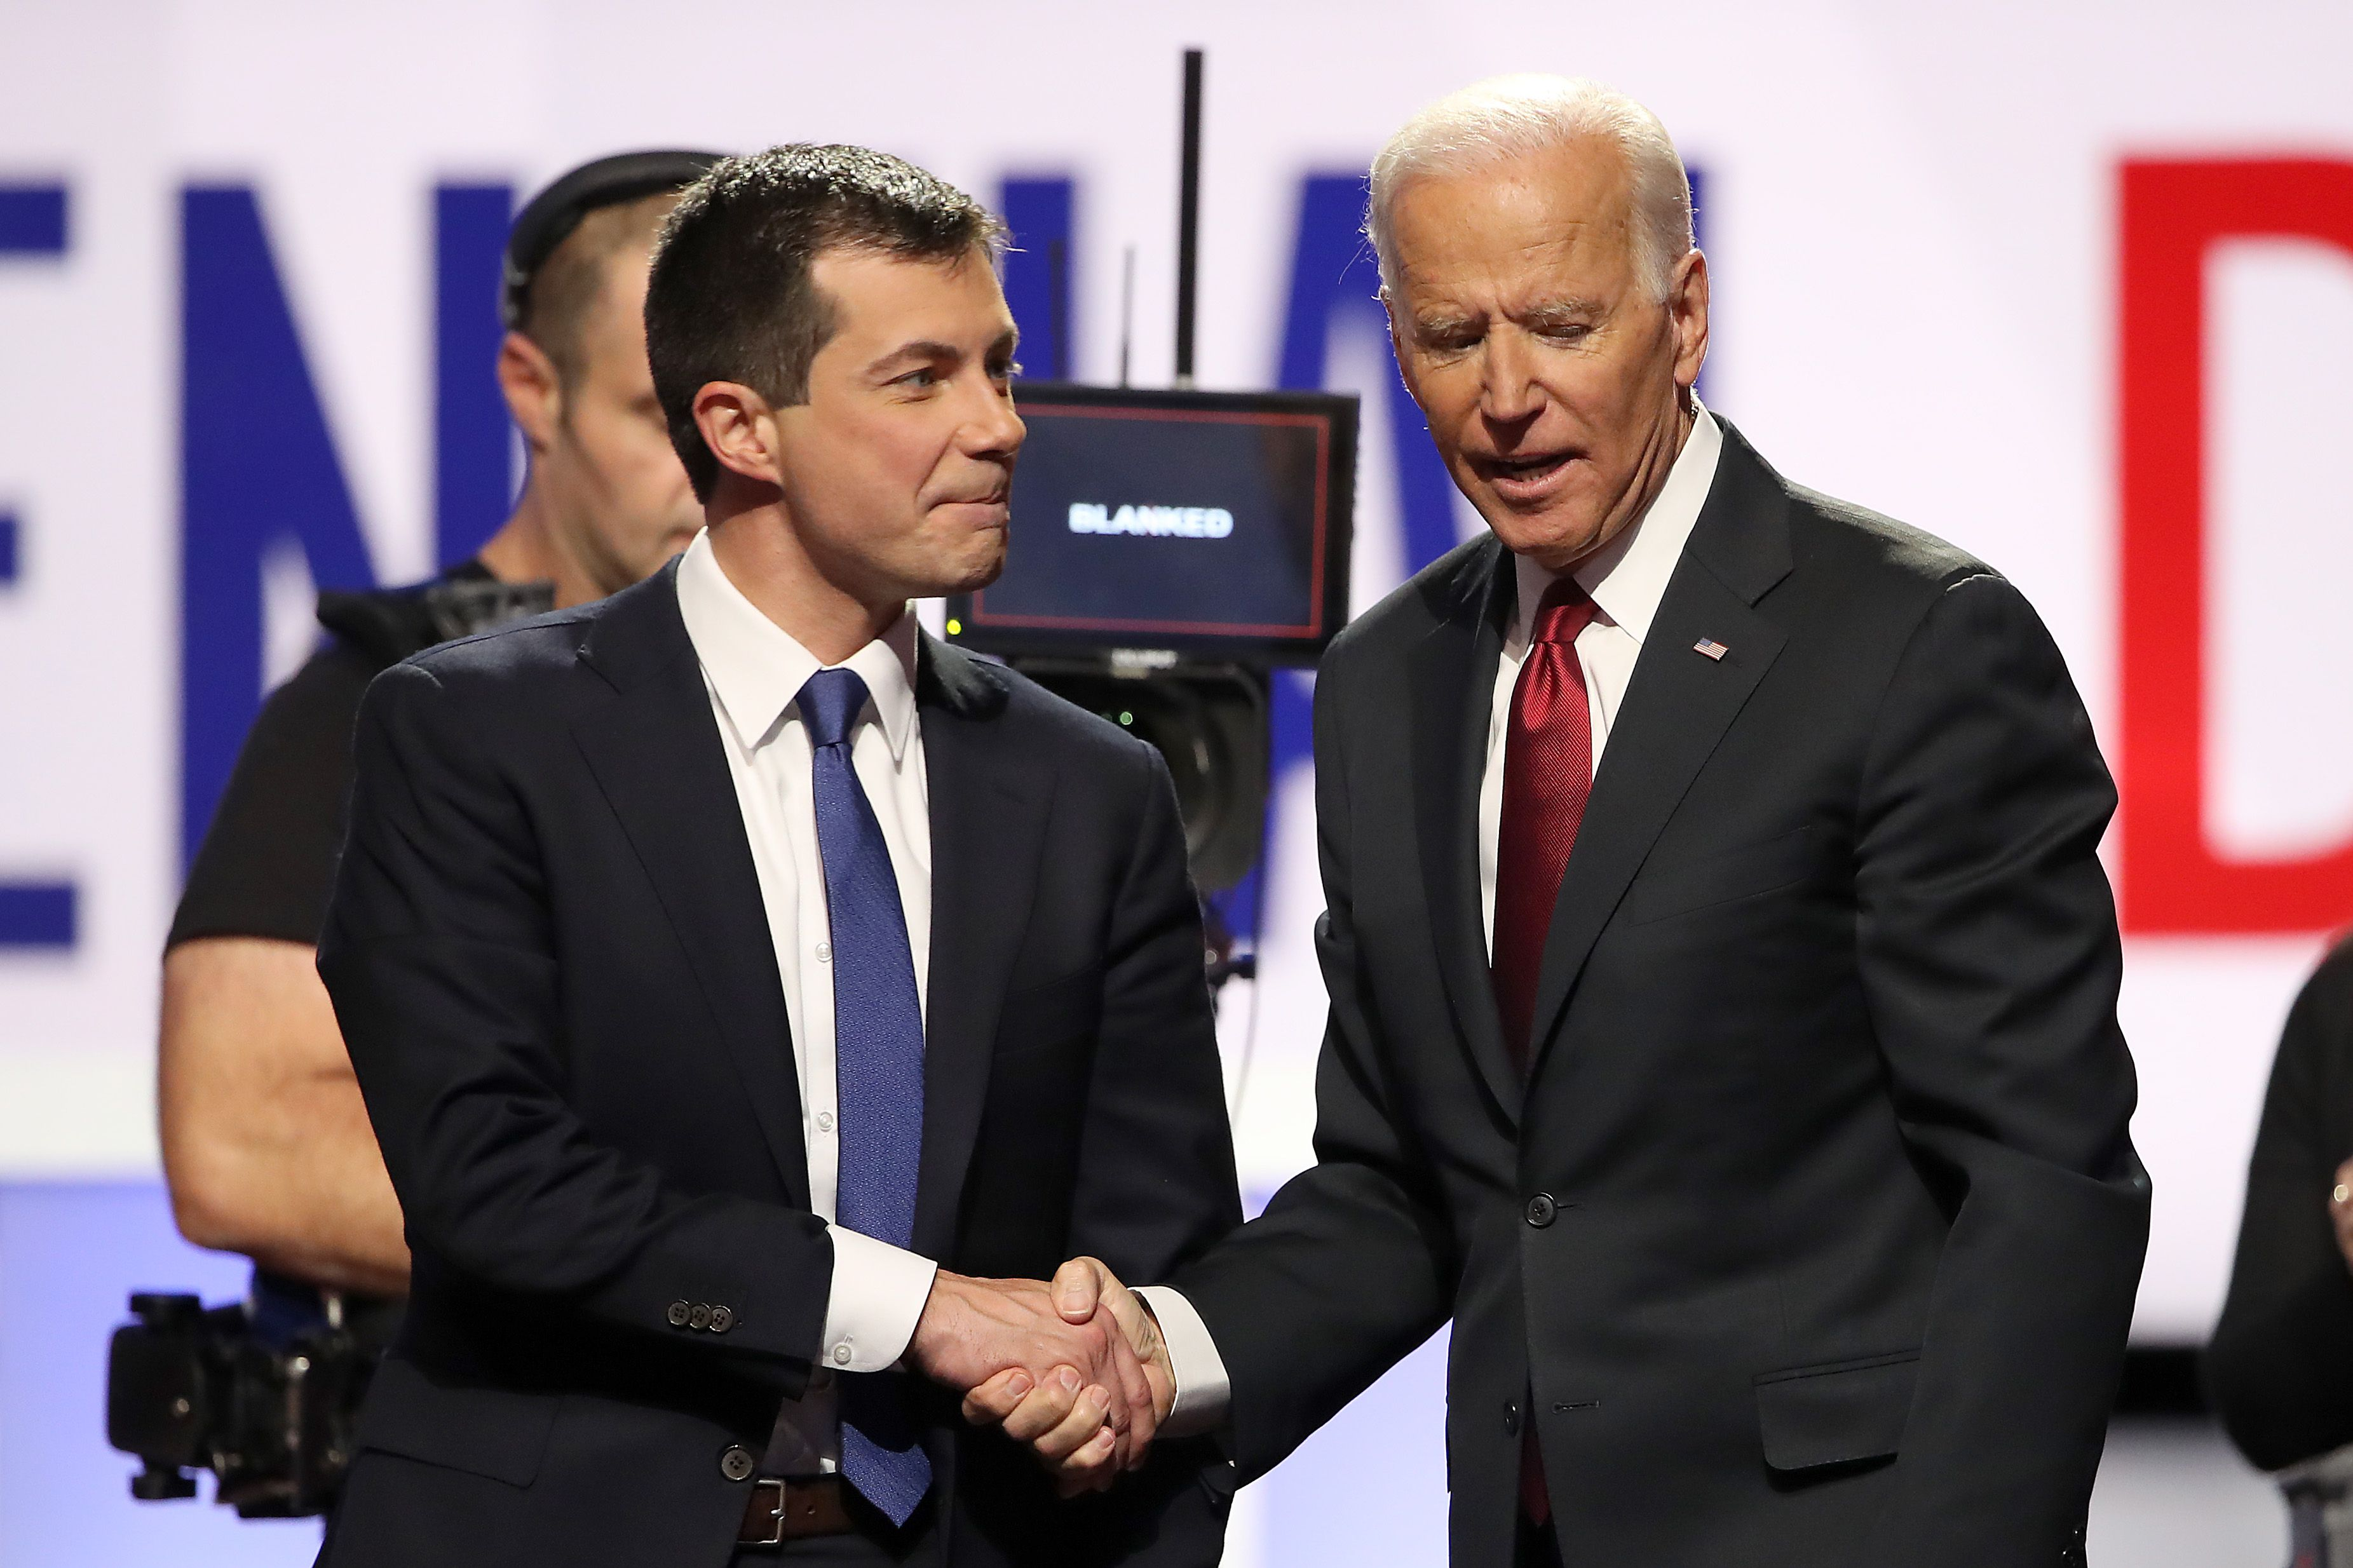 Joe Biden to Nominate Pete Buttigieg for Transportation Secretary